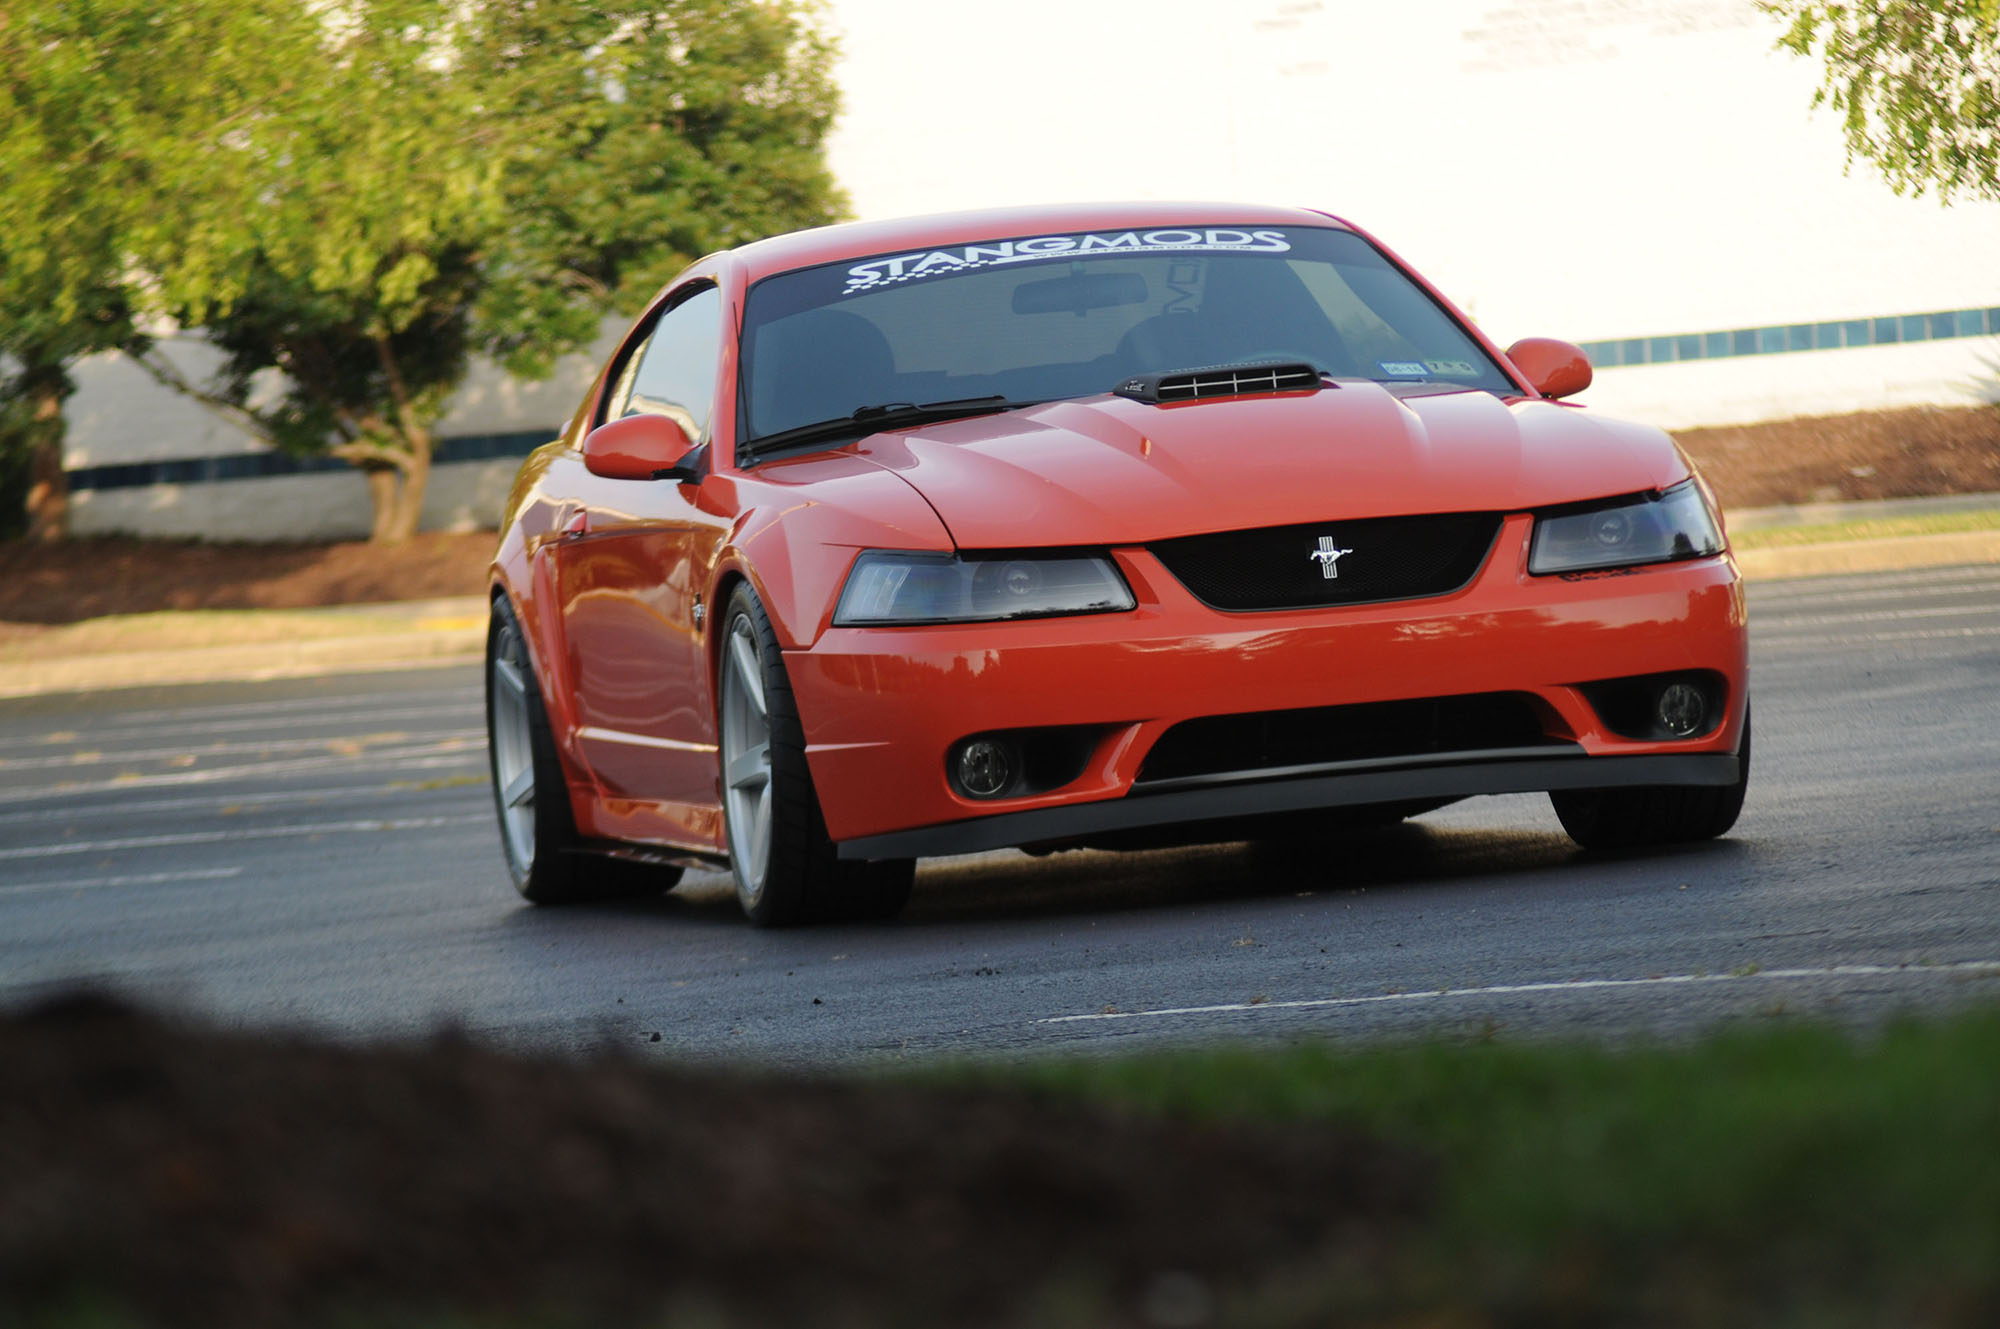 2004 Mustang Mach 1 Front